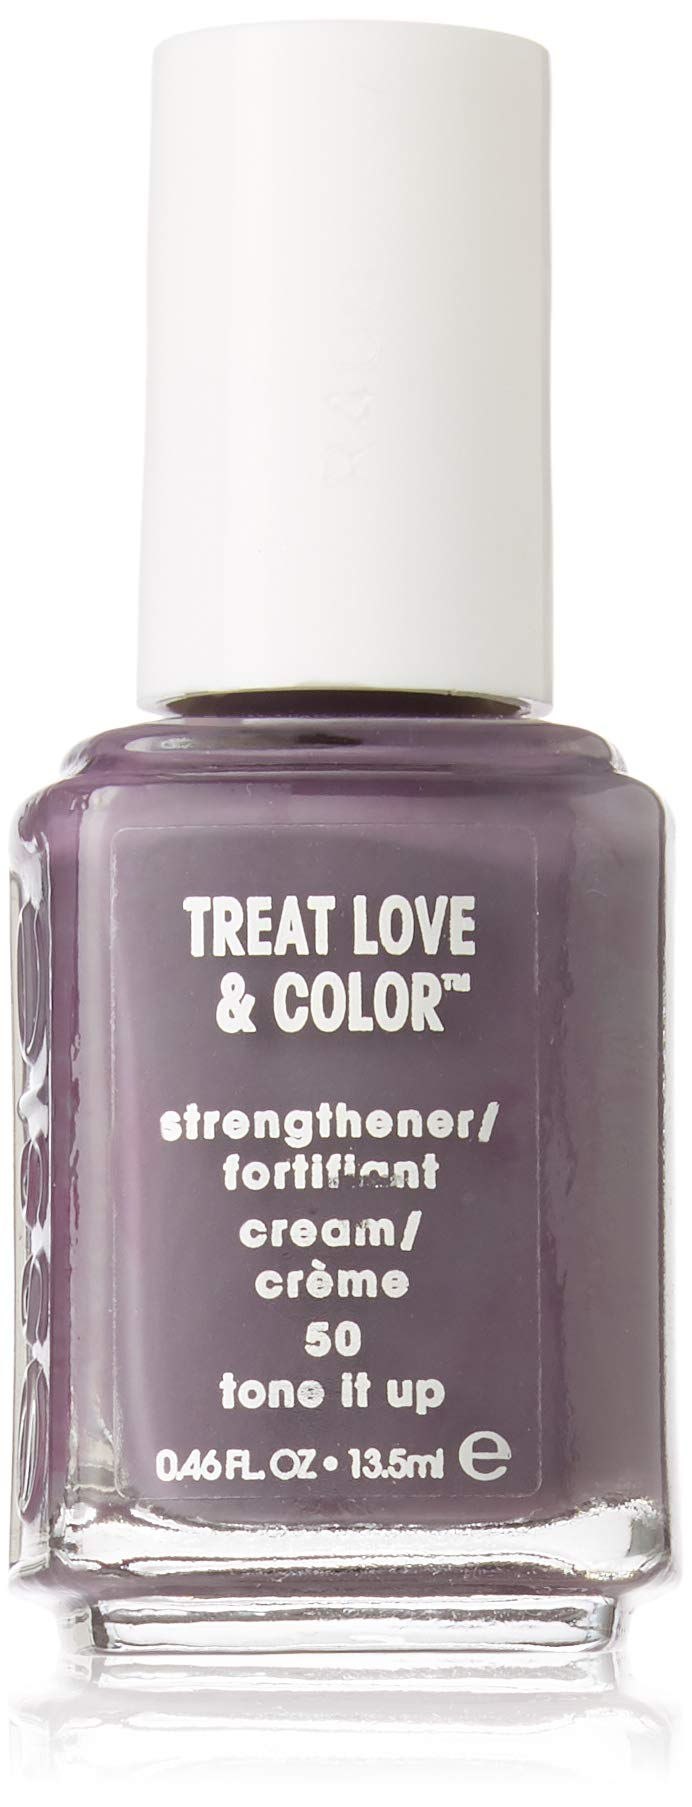 essie Treat Love & Color Strengthener for Normal To Dry/Brittle Nails, Tone It Up, 0.46 fl. Oz